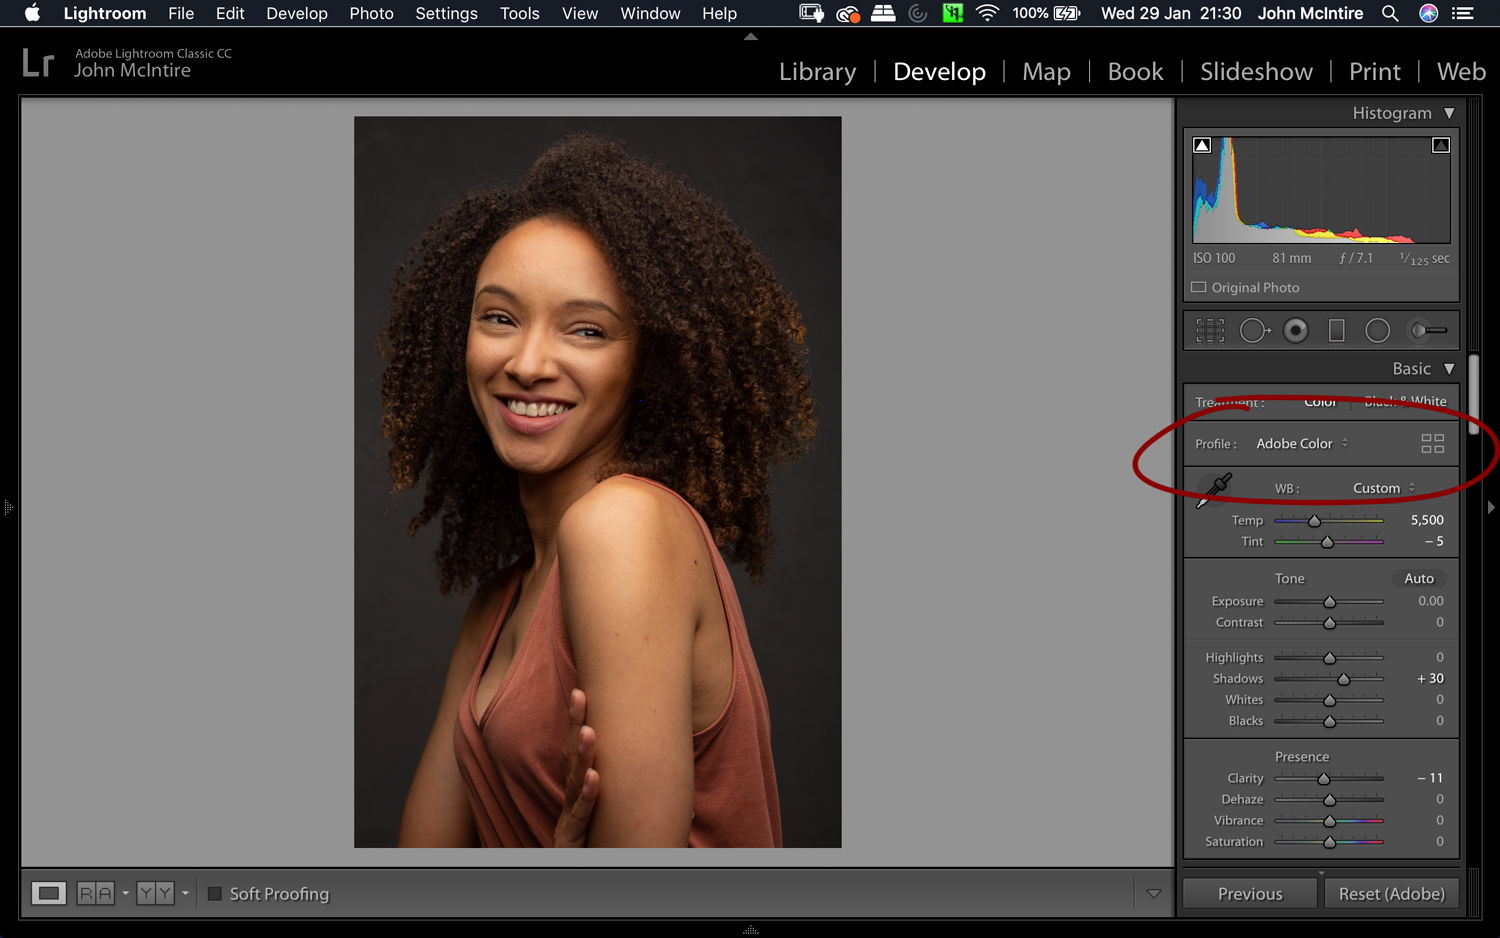 Things to do to every photo in Lightroom - Color Profiles